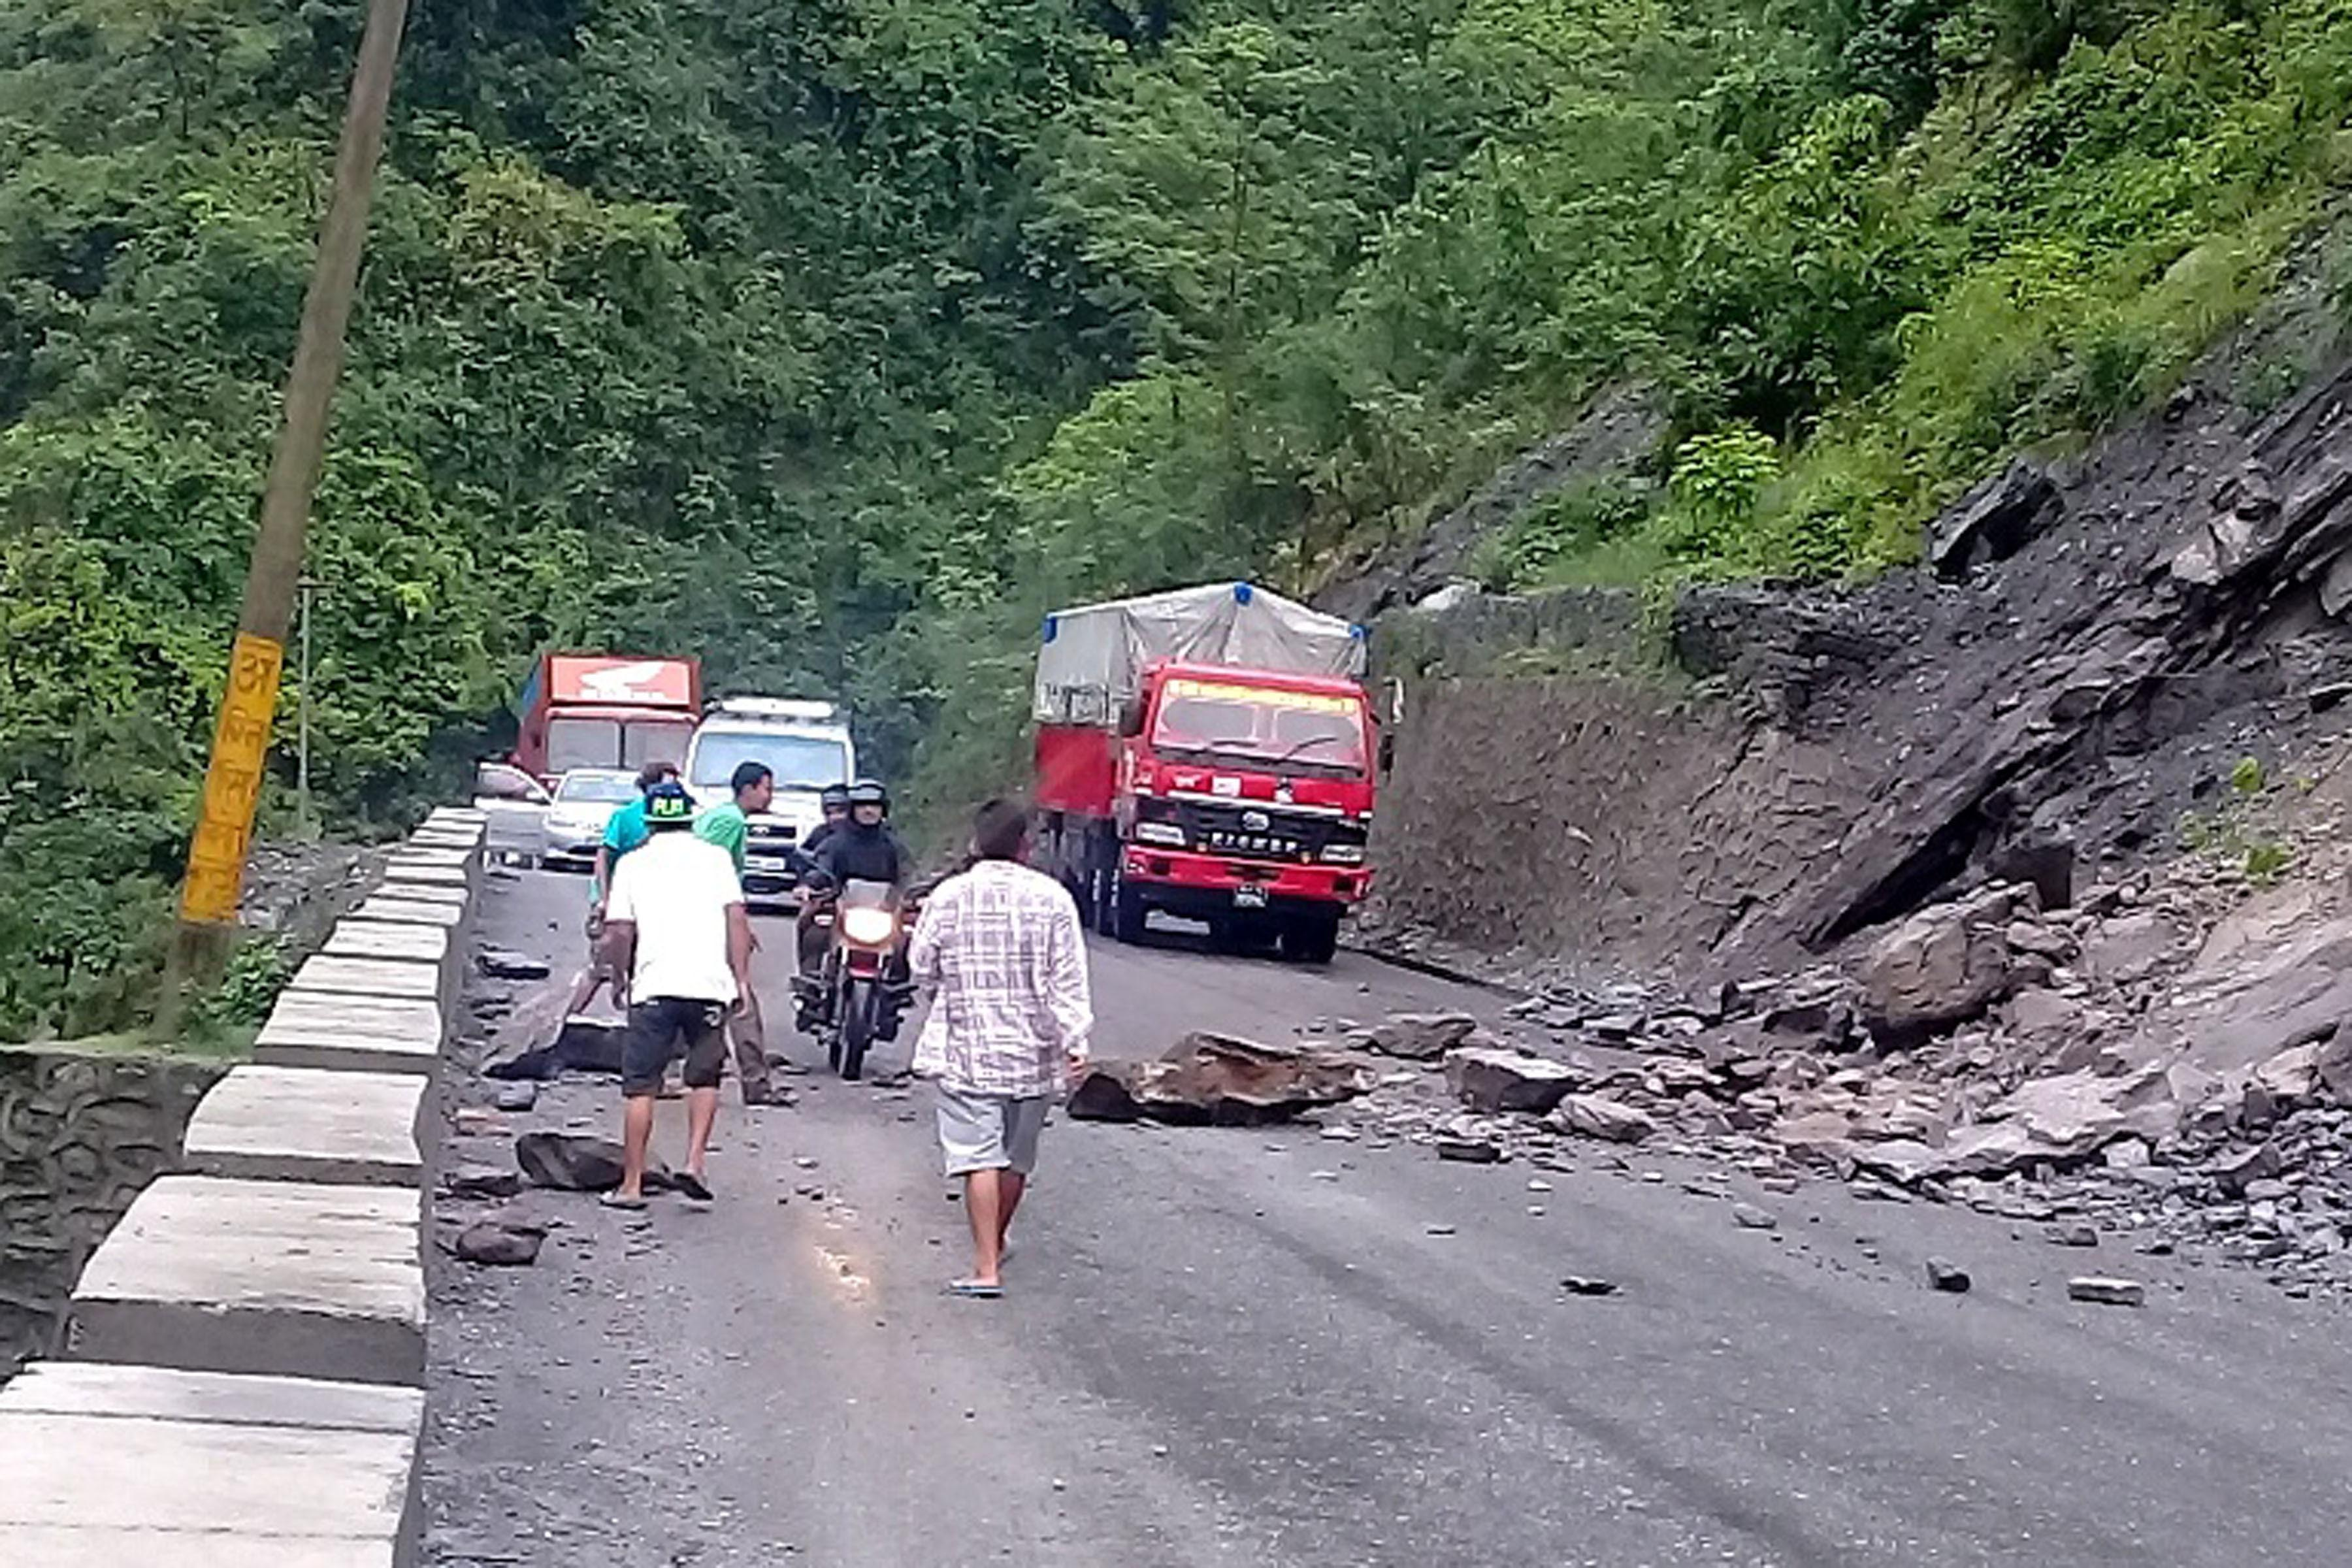 A truck driver and his assistants clear landslide debris off the road while a motorcycle passes by, near Jalbire along the Narayangadh-Muglin road section, in Chitwan district, on Friday, May 18. Photo: RSS